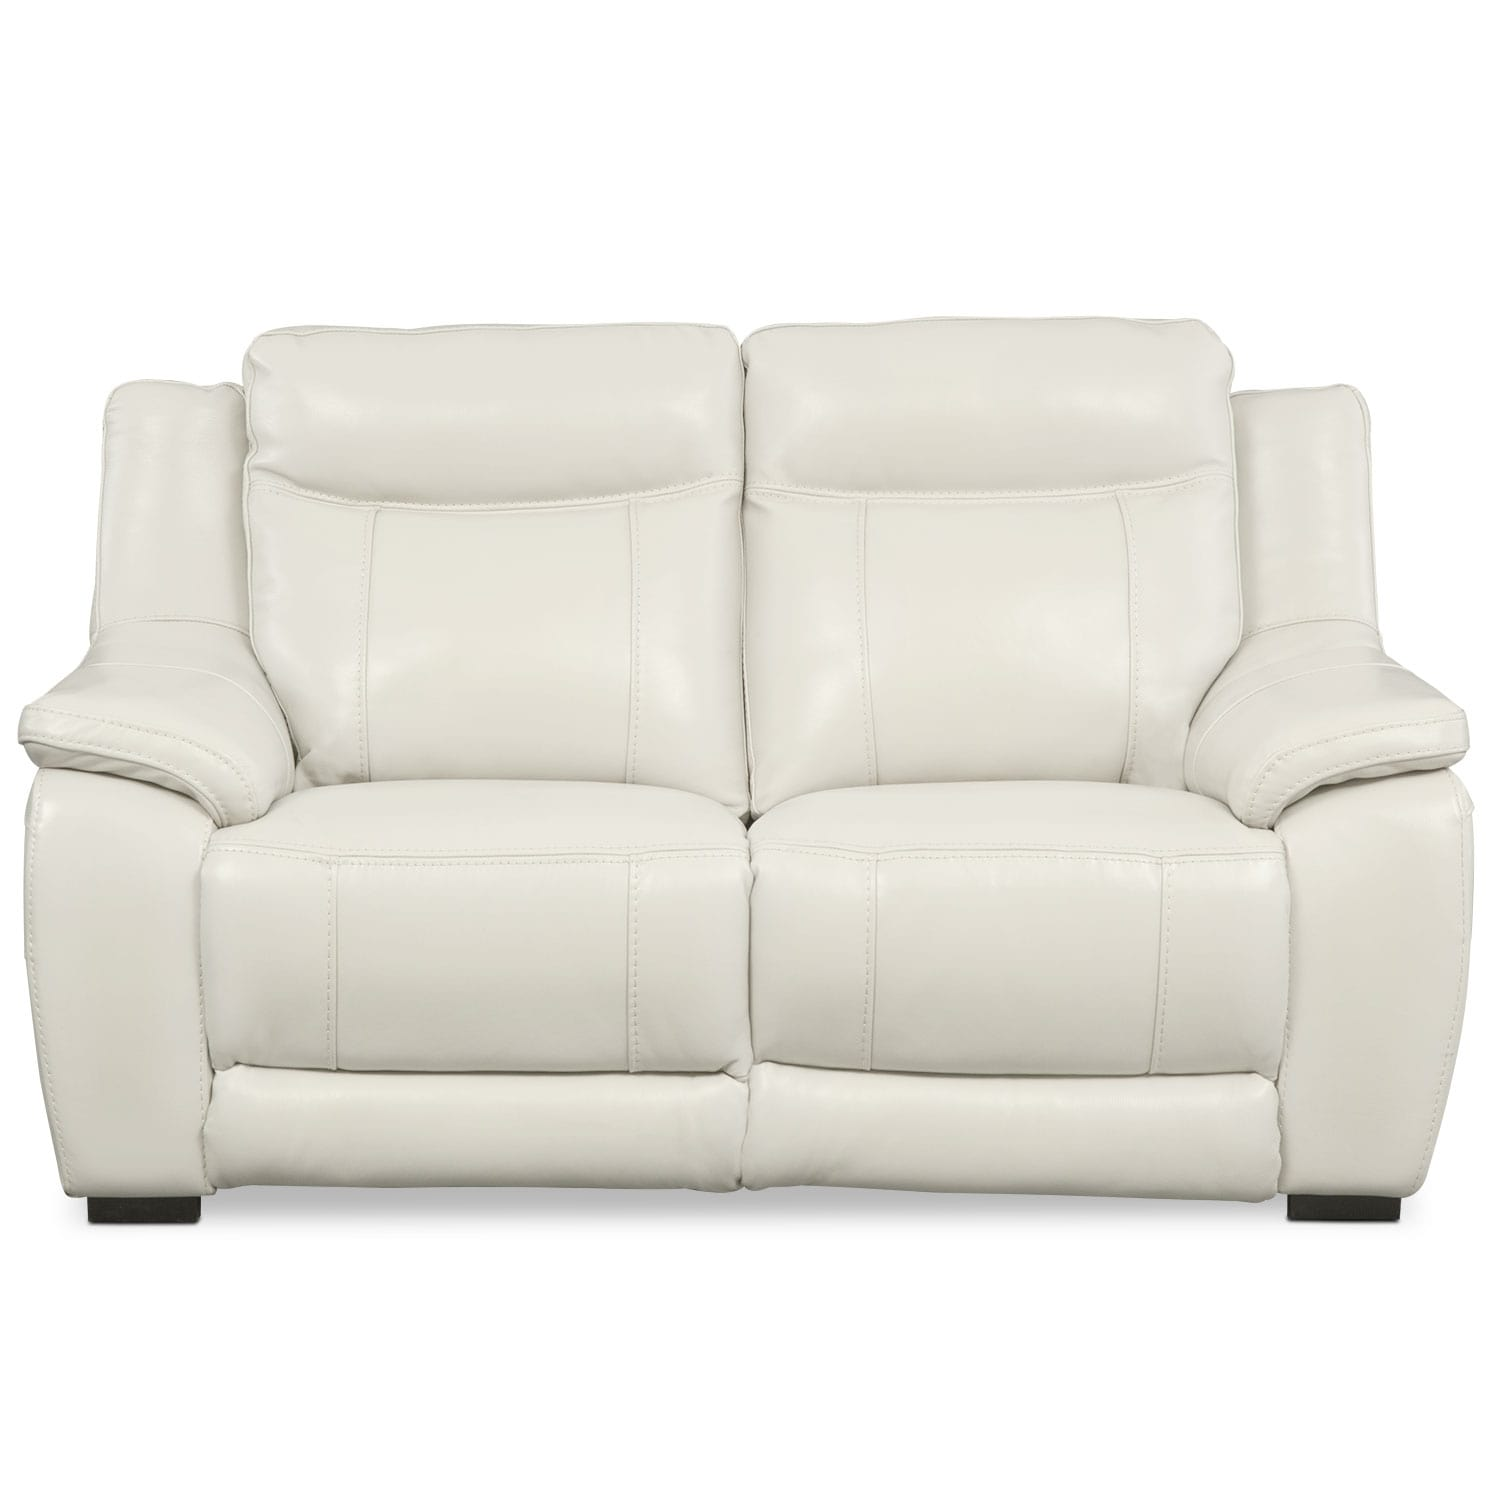 Lido Power Reclining Loveseat Ivory Value City Furniture